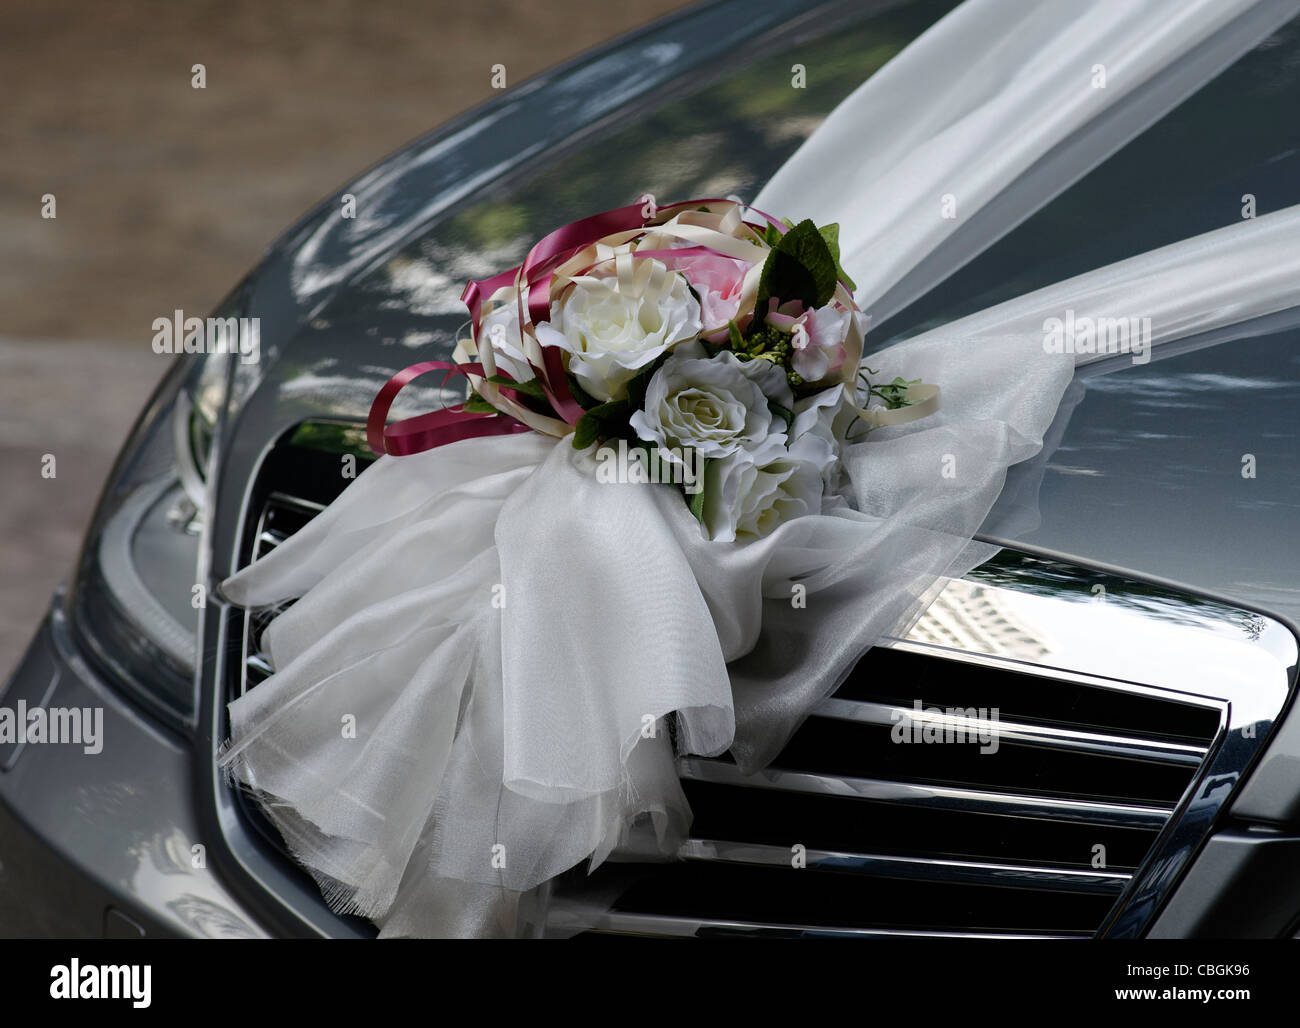 Decorations On A Wedding Car In Singapore Asia Stock Photo